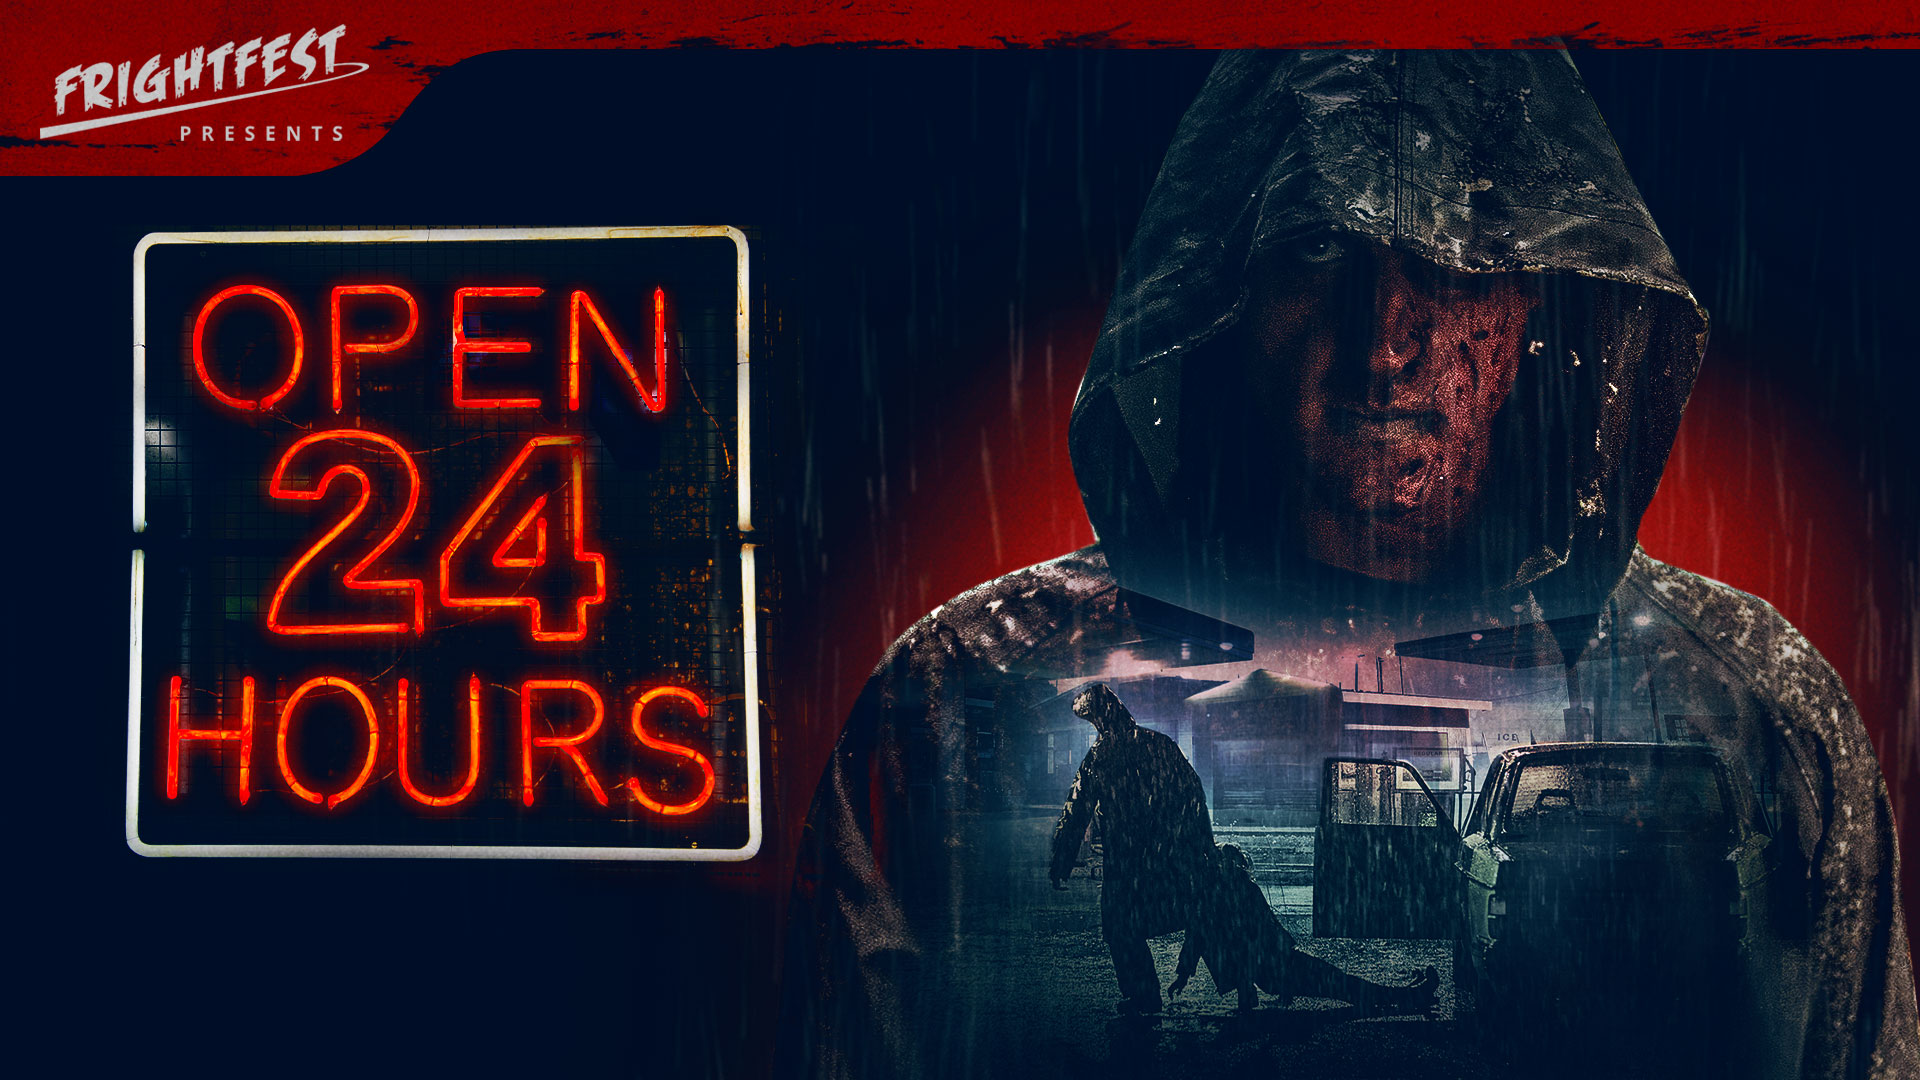 FRIGHTFEST PRESENTS 'OPEN 24 HOURS'